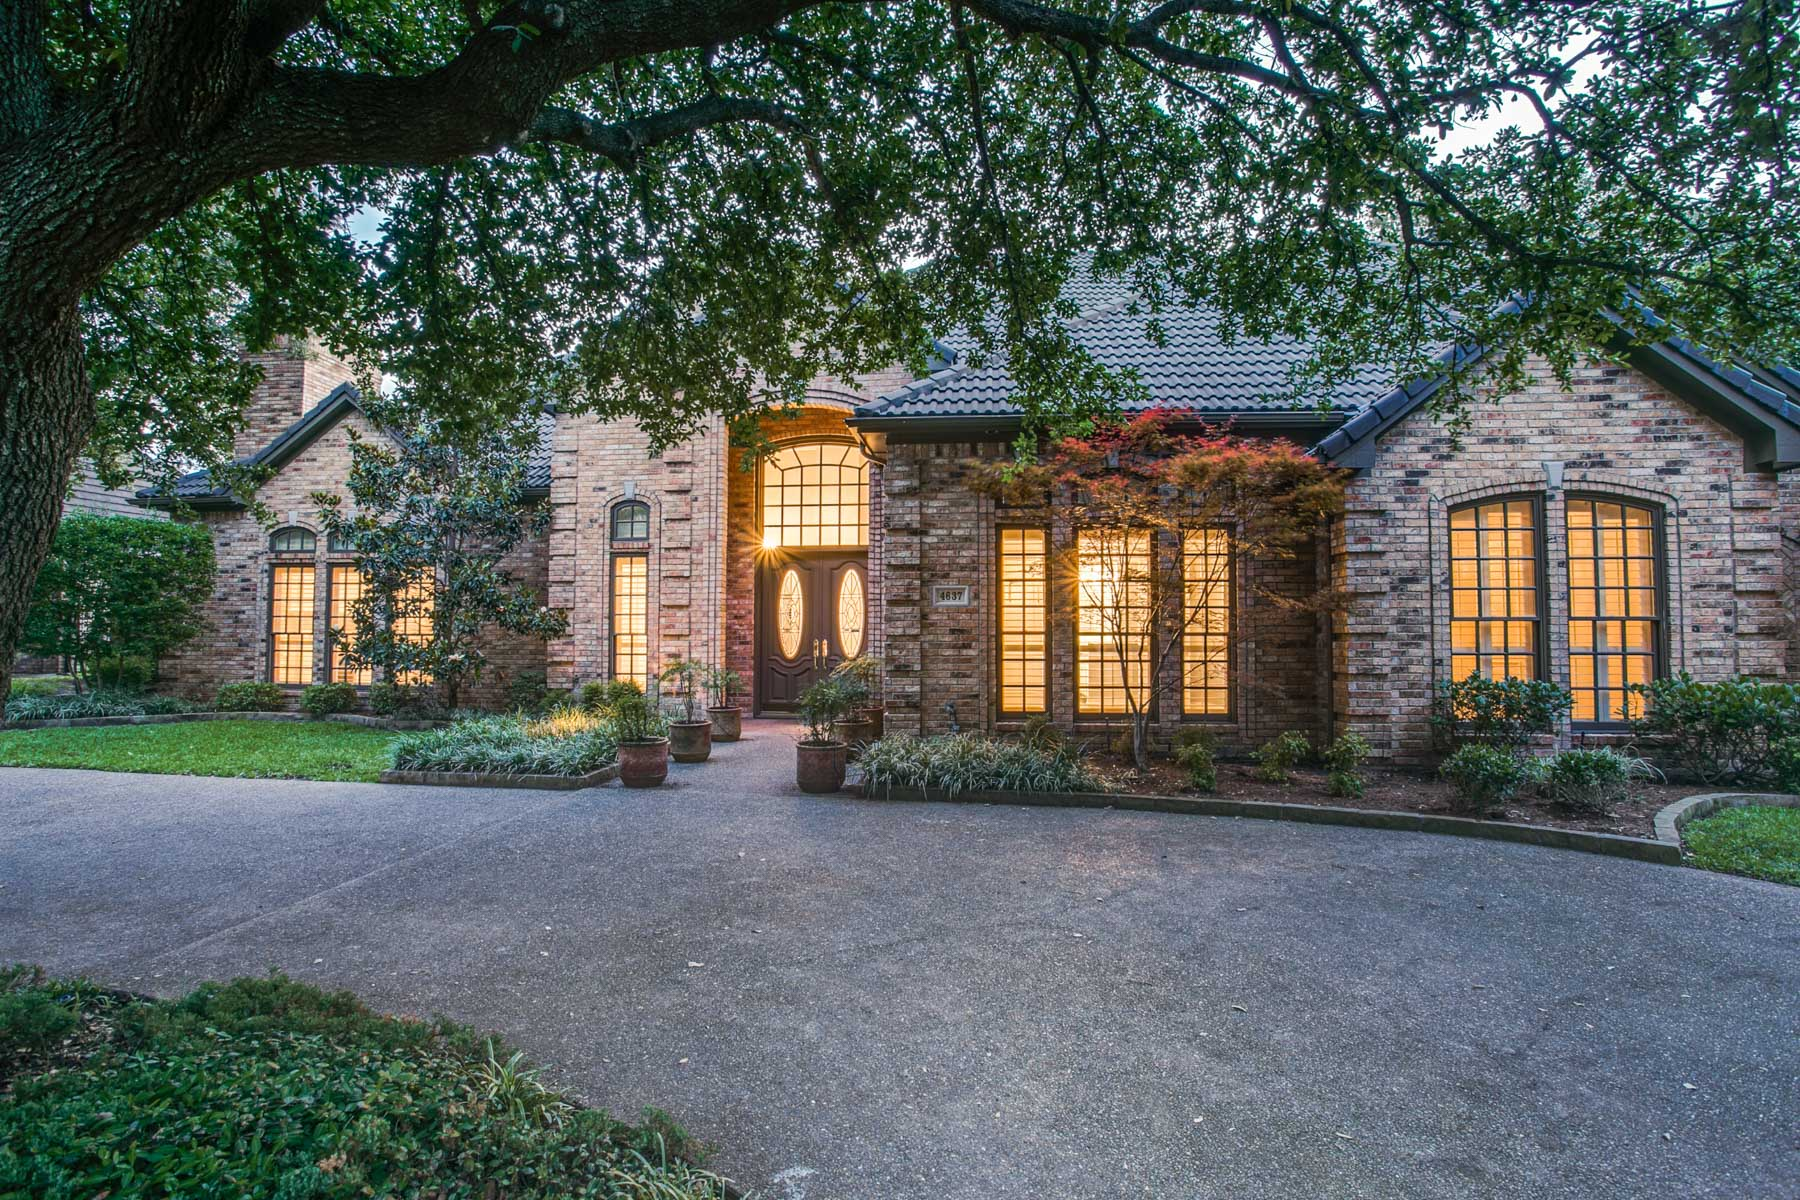 Single Family Home for Sale at Harrington Homeplace Traditional 4637 Conner Cir Plano, Texas 75093 United States